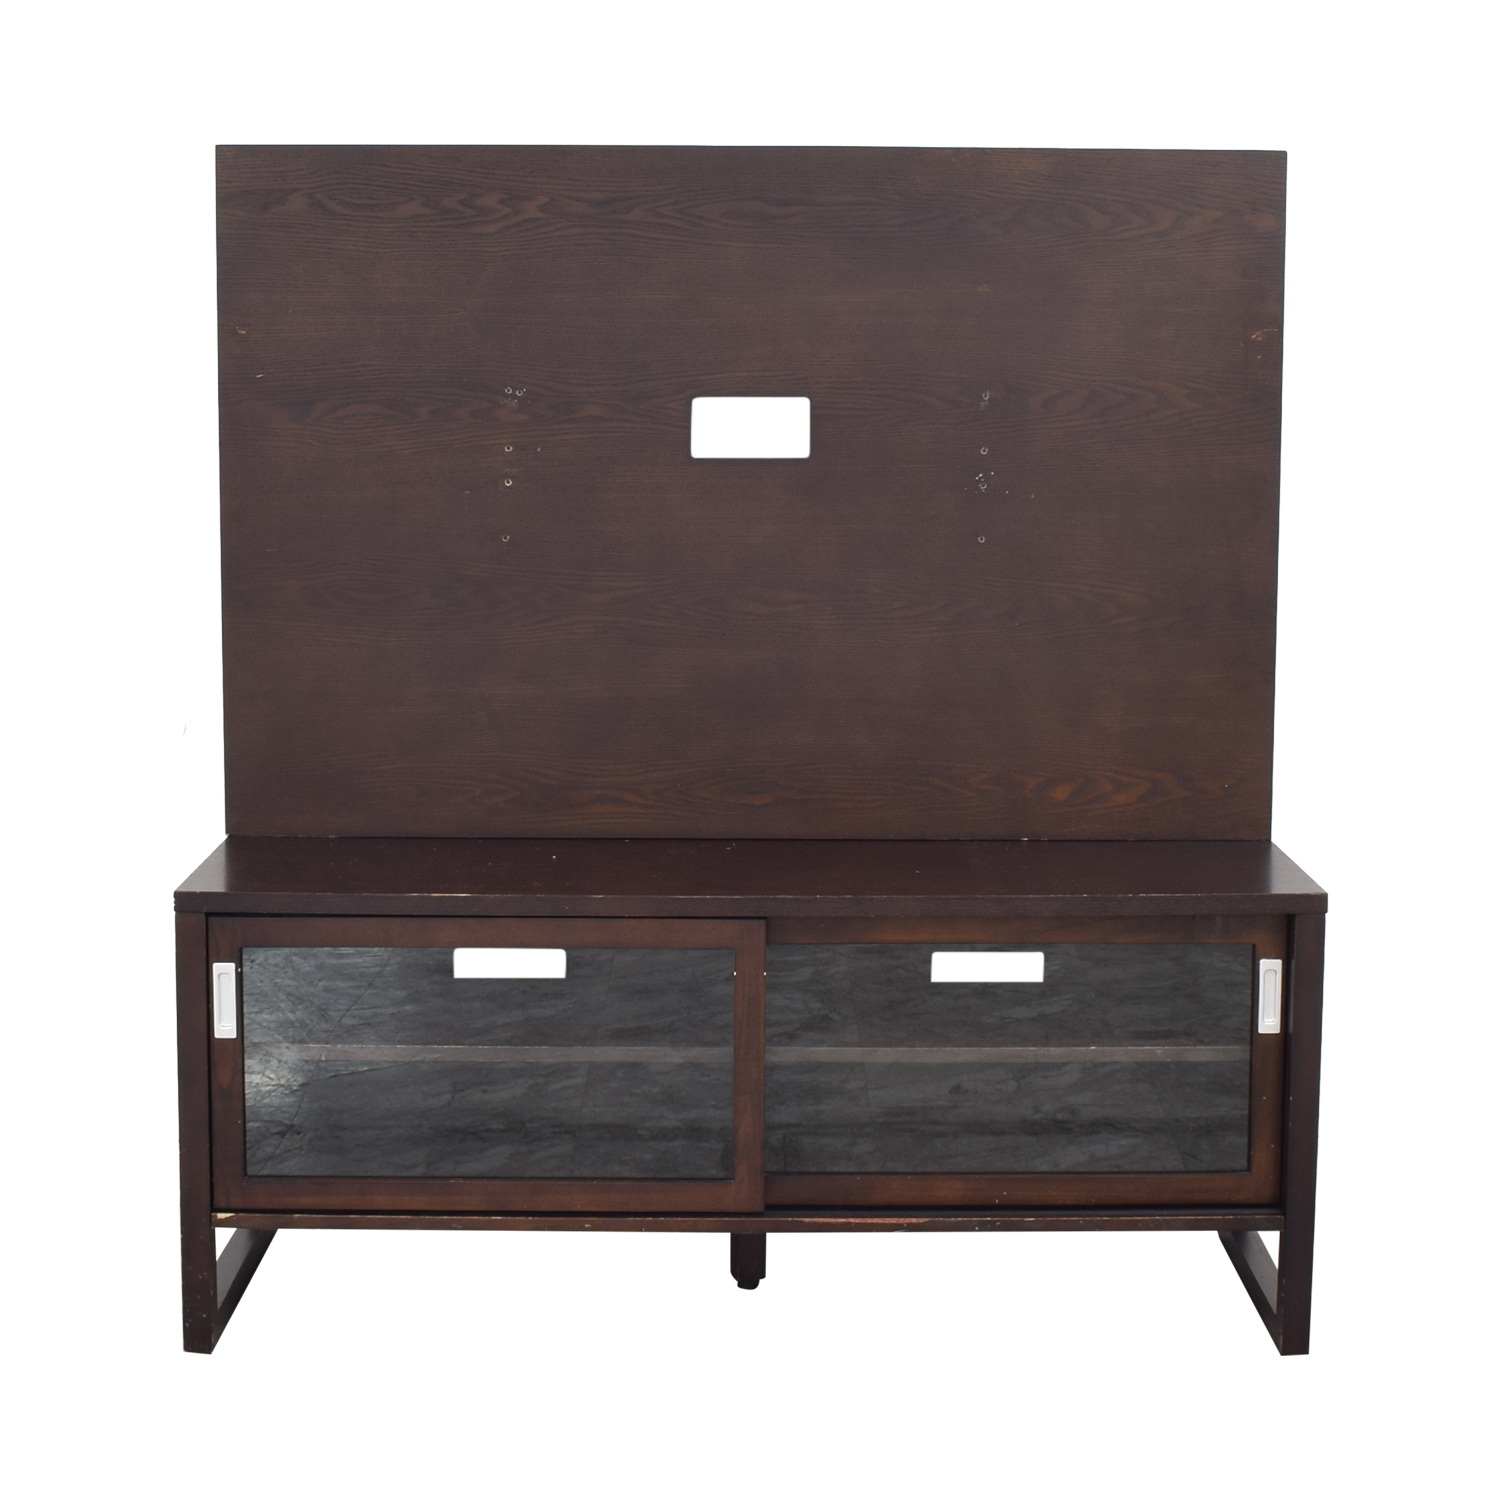 buy Crate & Barrel Crate & Barrel Entertainment Console with Back Panel online